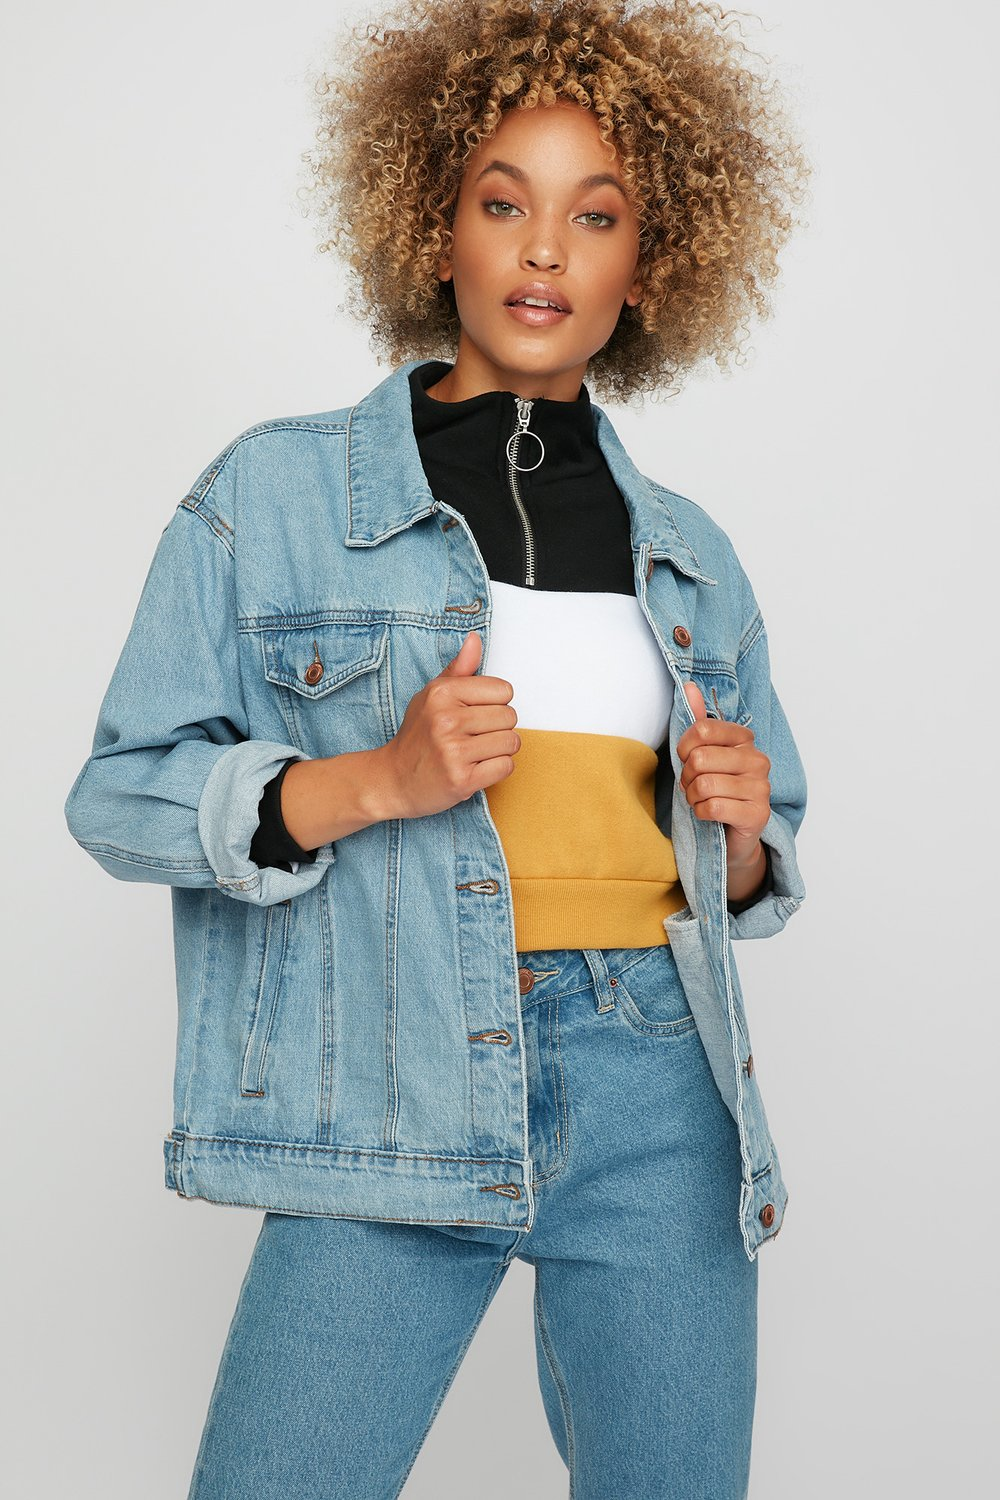 women denim on denim outfit